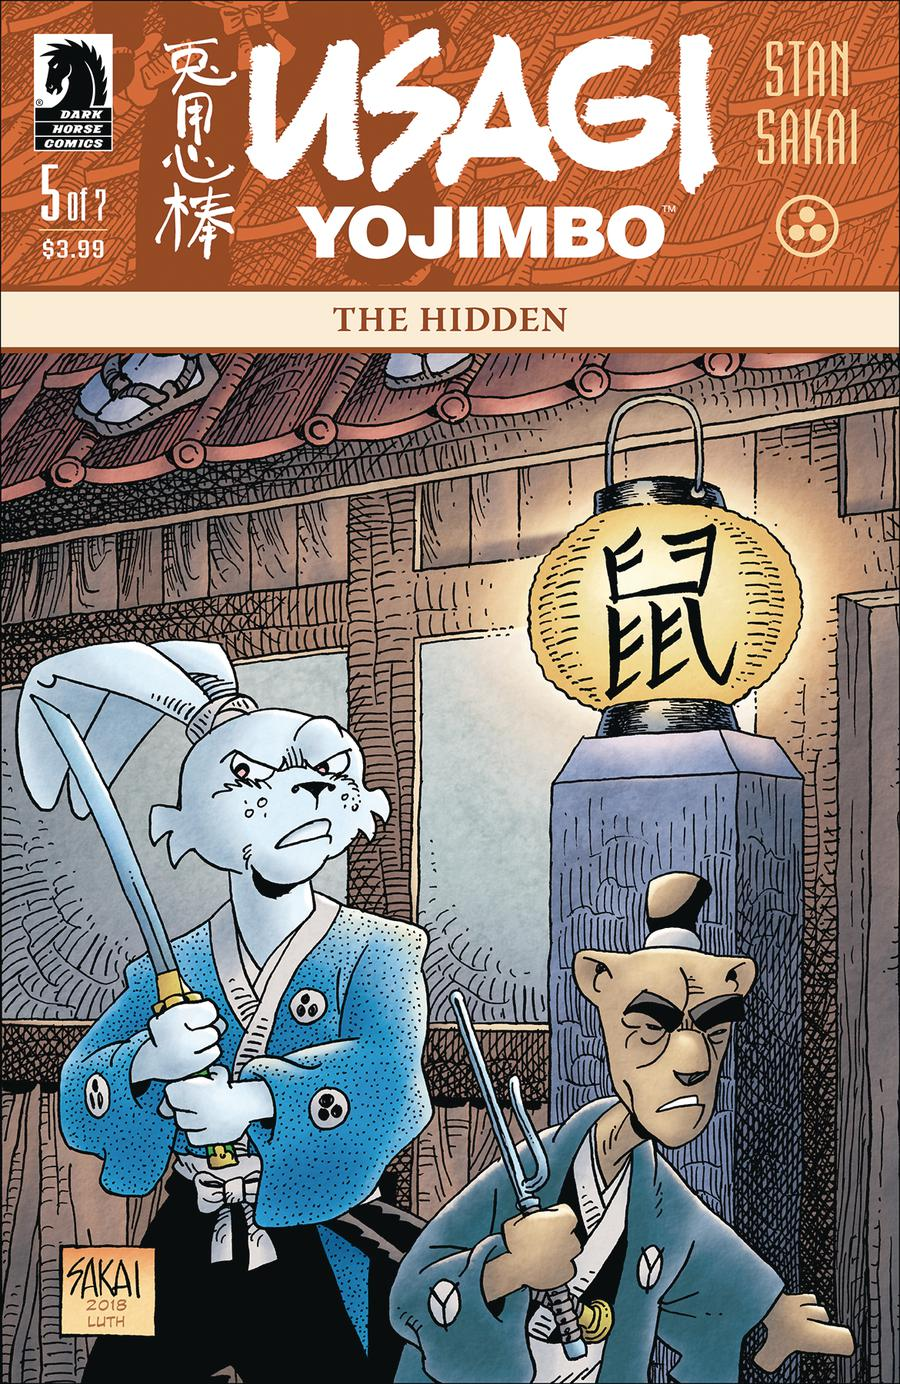 Usagi Yojimbo The Hidden #5